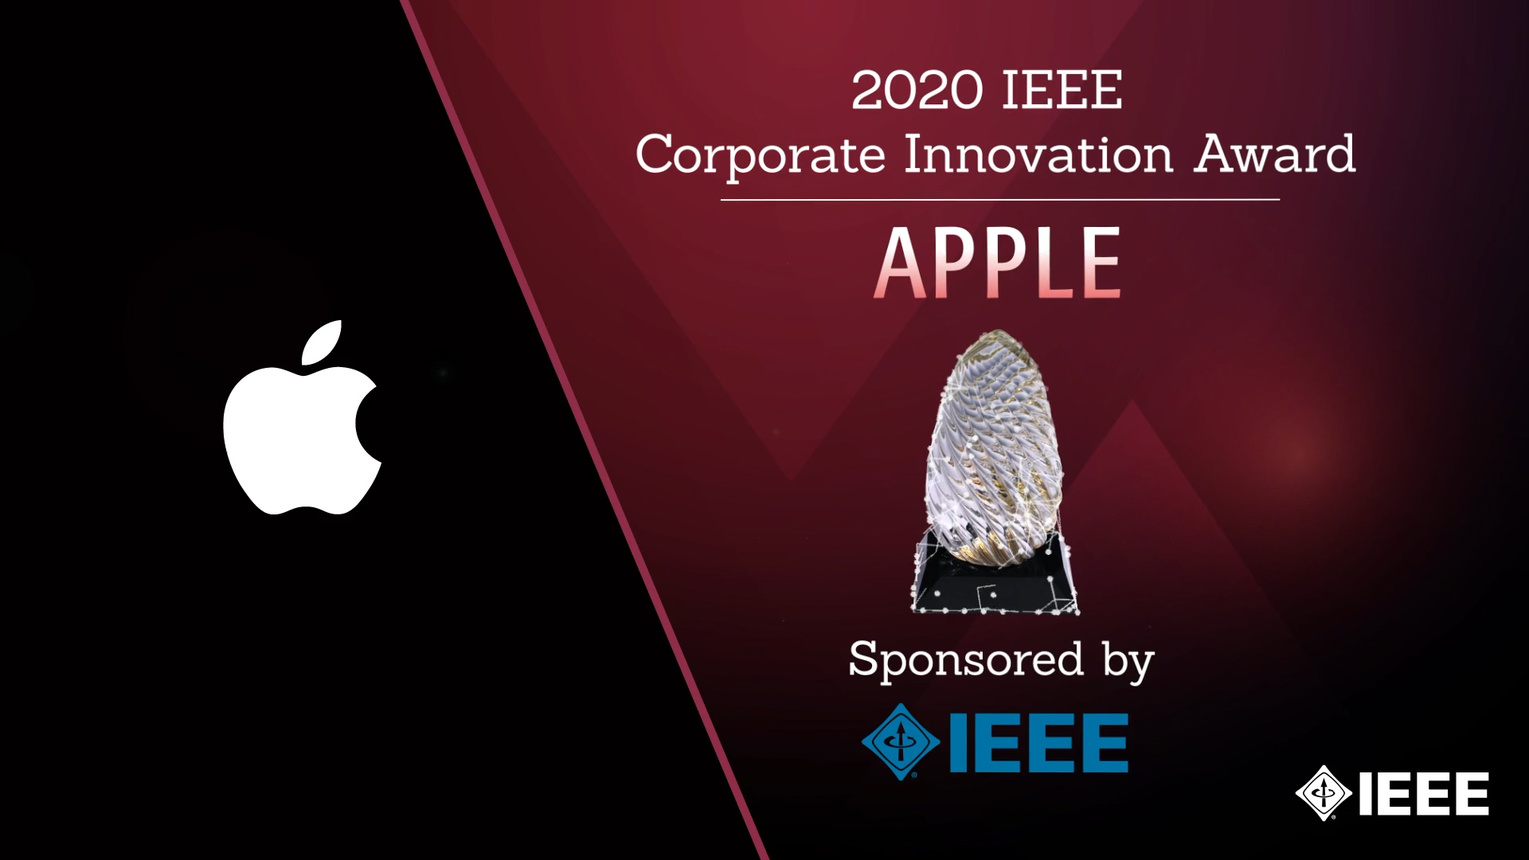 Honors 2020: Apple Wins the IEEE Corporate Innovation Award